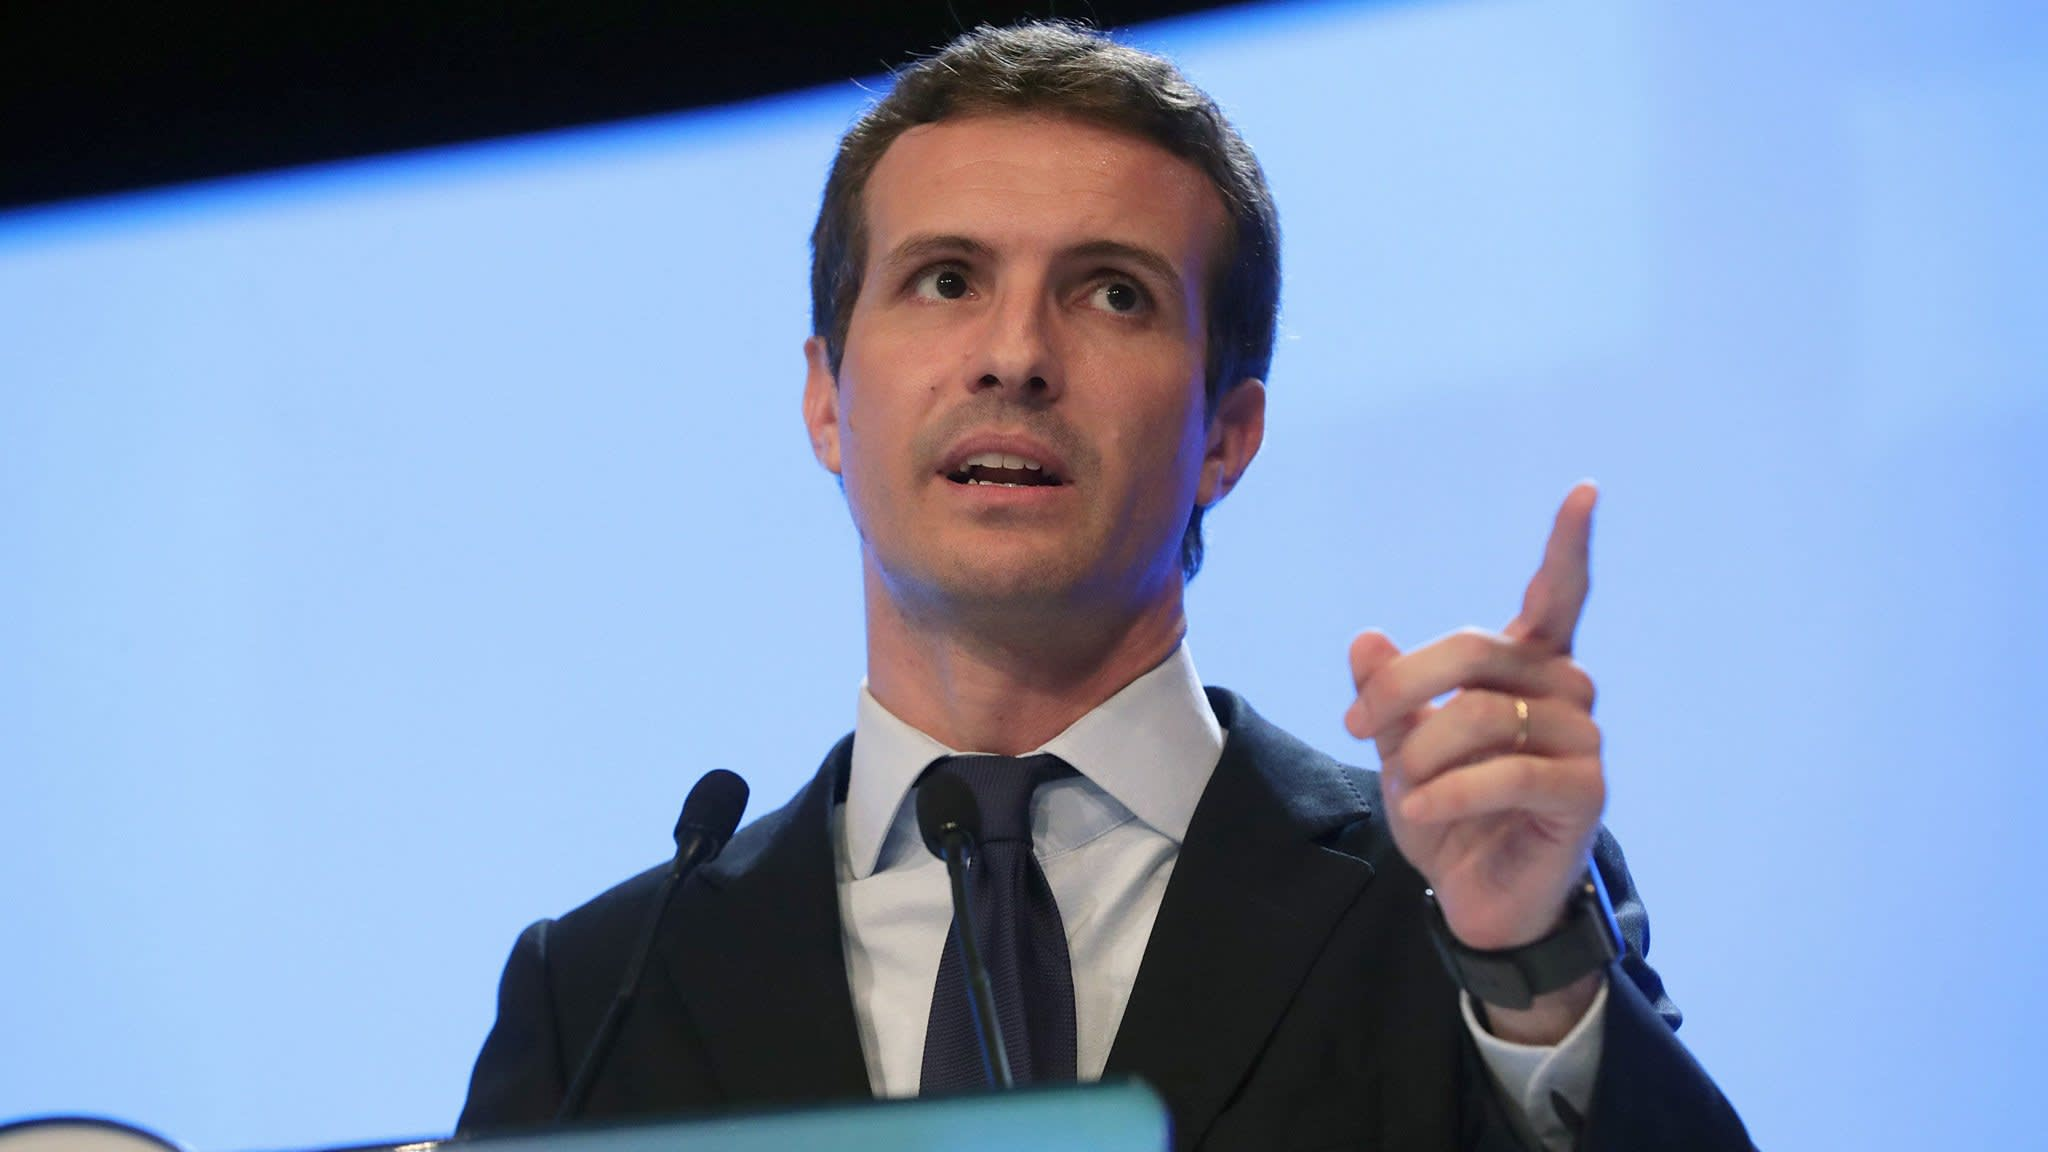 Spain's People's Party elects Pablo Casado